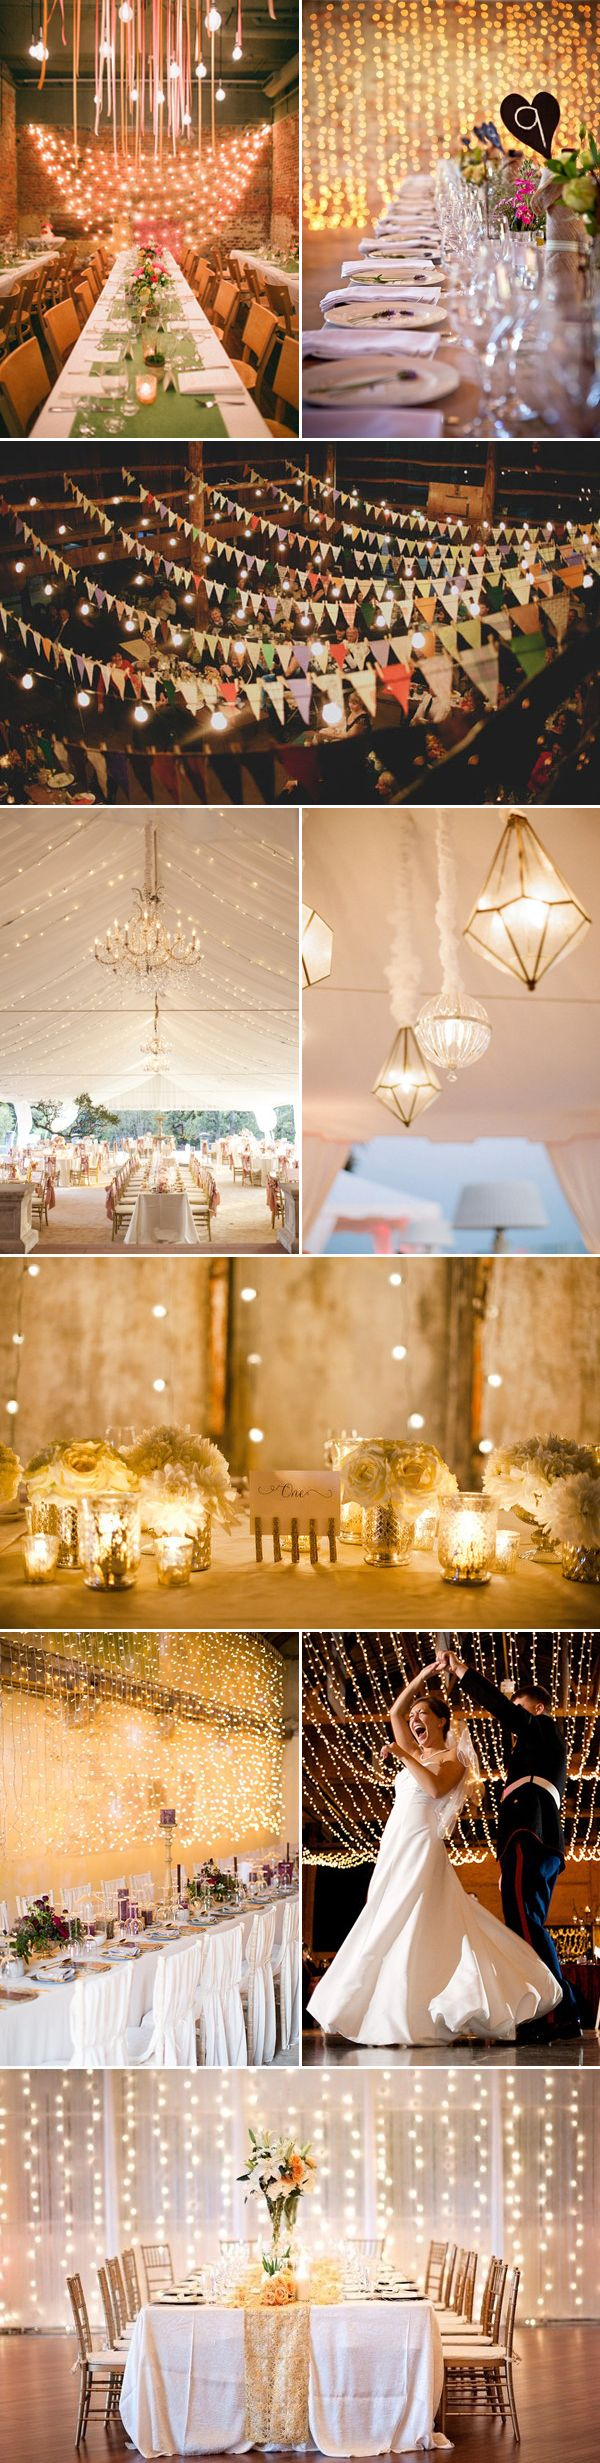 Indoor Lighting Decoration Ideas / http://www.deerpearlflowers.com/39-magical-string-hanging-light-decorations-wedding-backdrop/